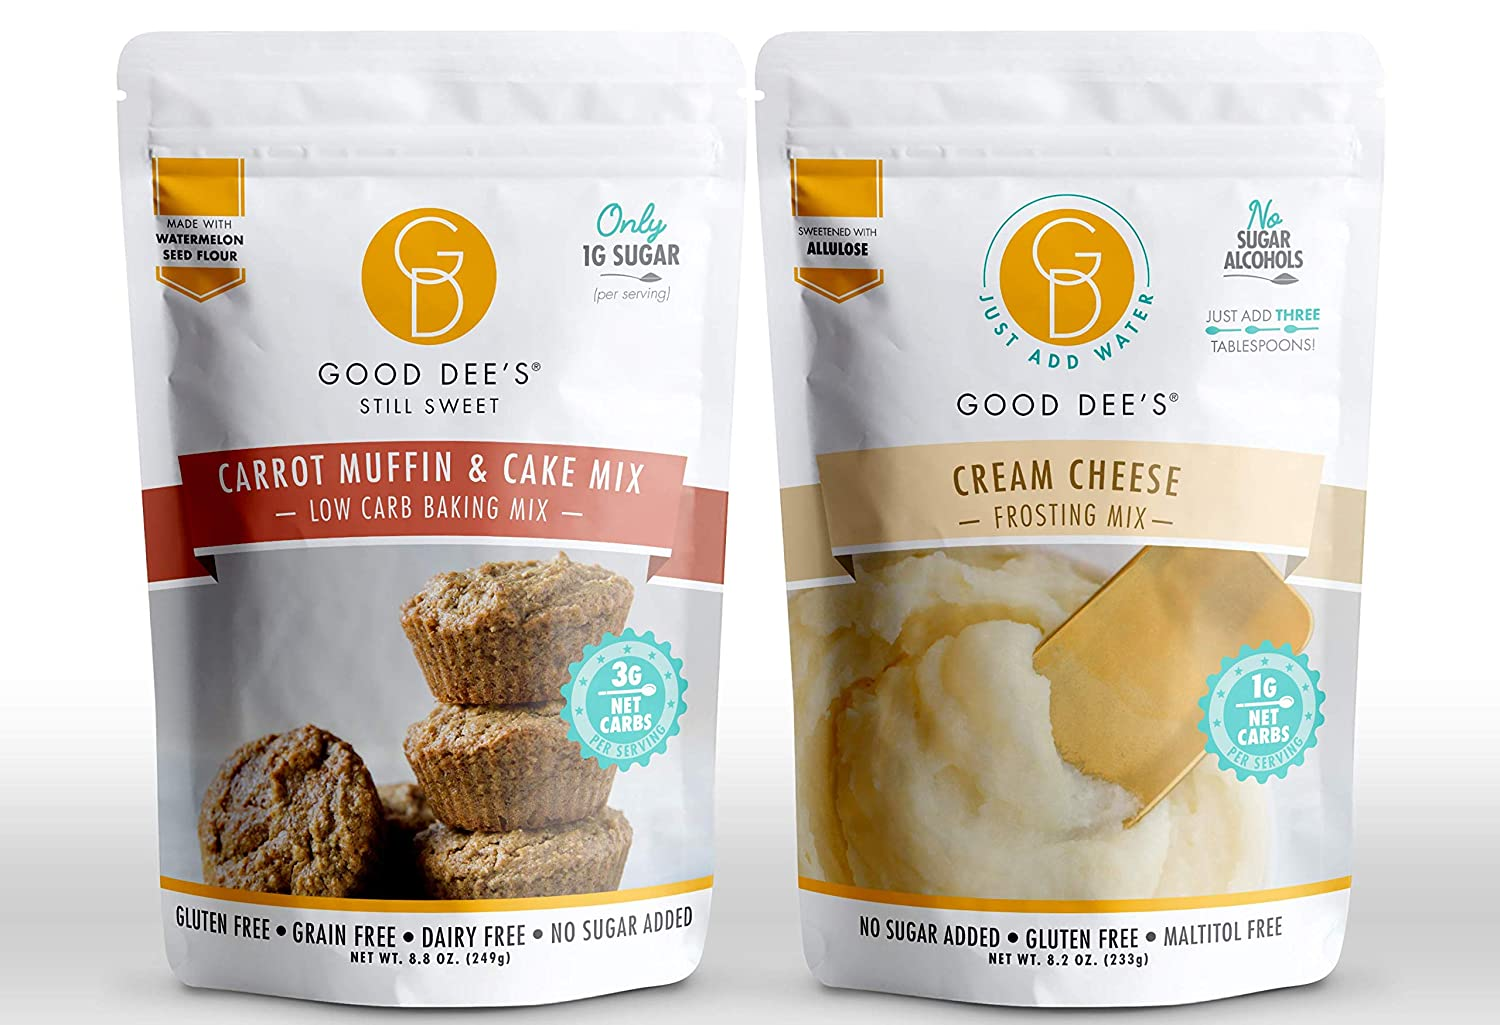 Good Dee's Just Add Water Cream Cheese Frosting Mix and Carrot Muffin & Cake Baking Mix